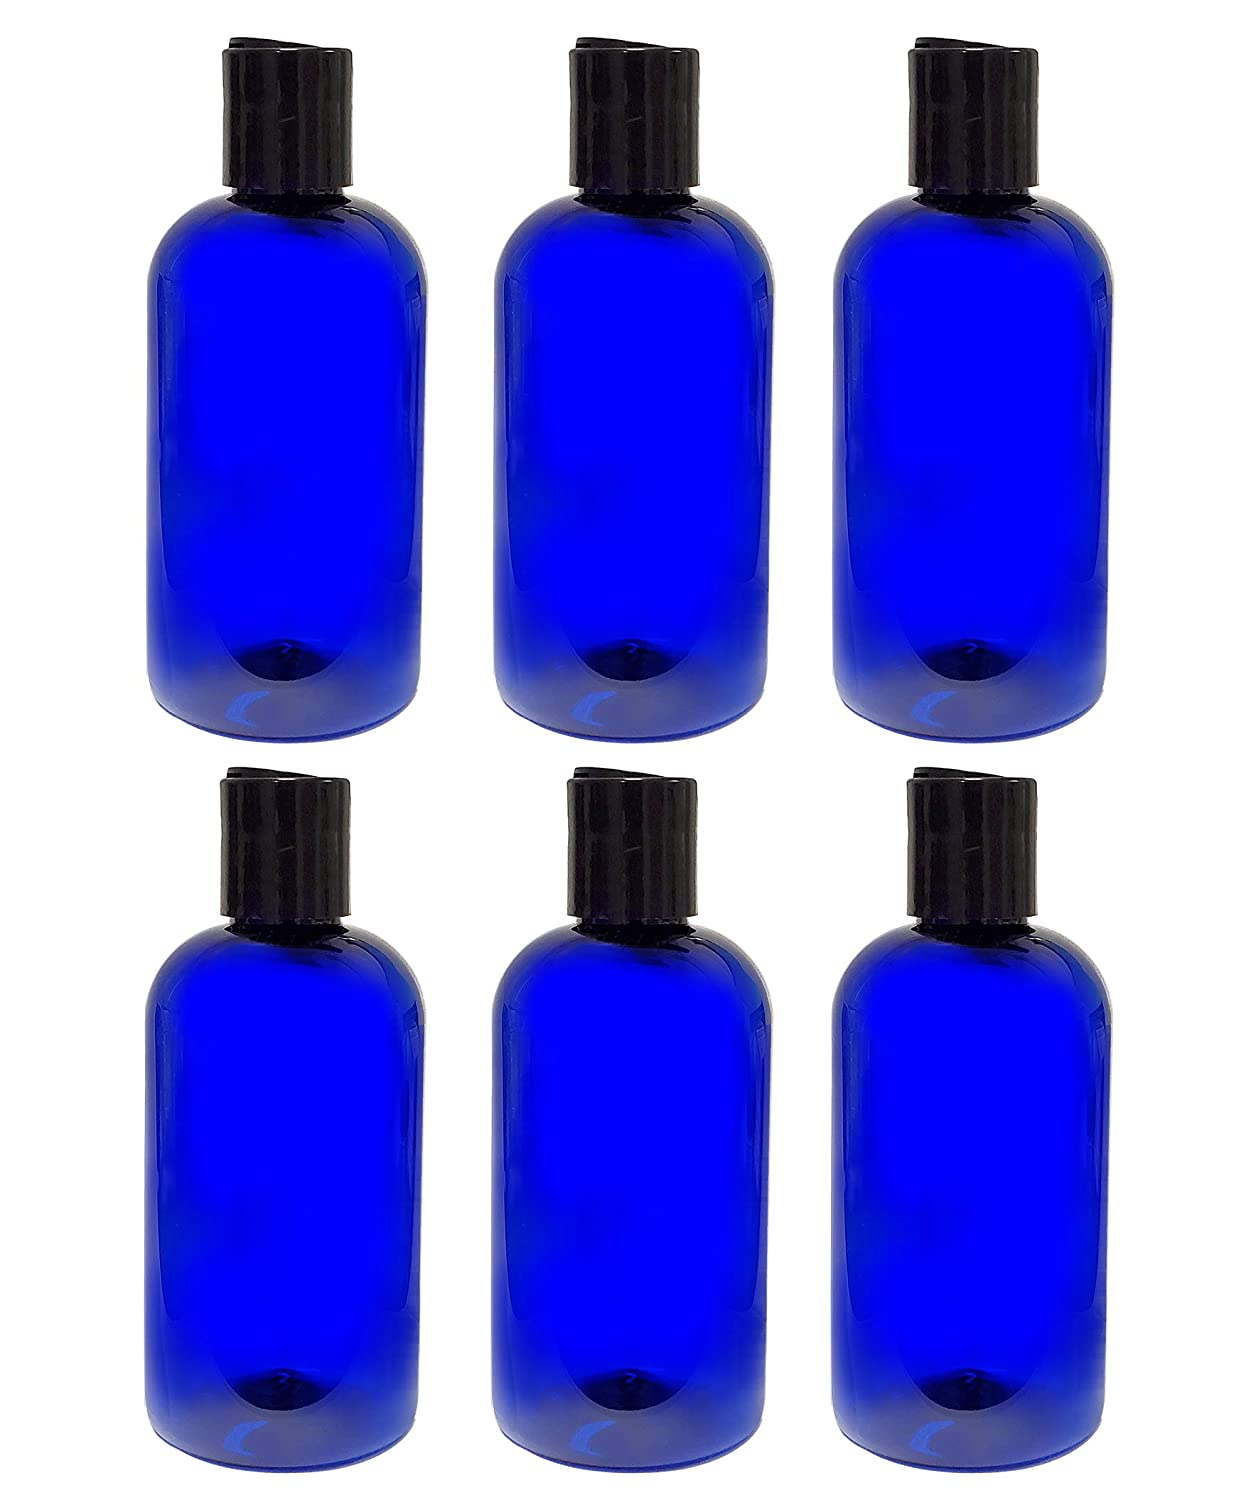 ljdeals 8 oz Cobalt Blue PET Plastic Refillable Bottles with Disc Top Caps, Pack of 6, BPA Free, Made in USA, 6 waterproof Labels